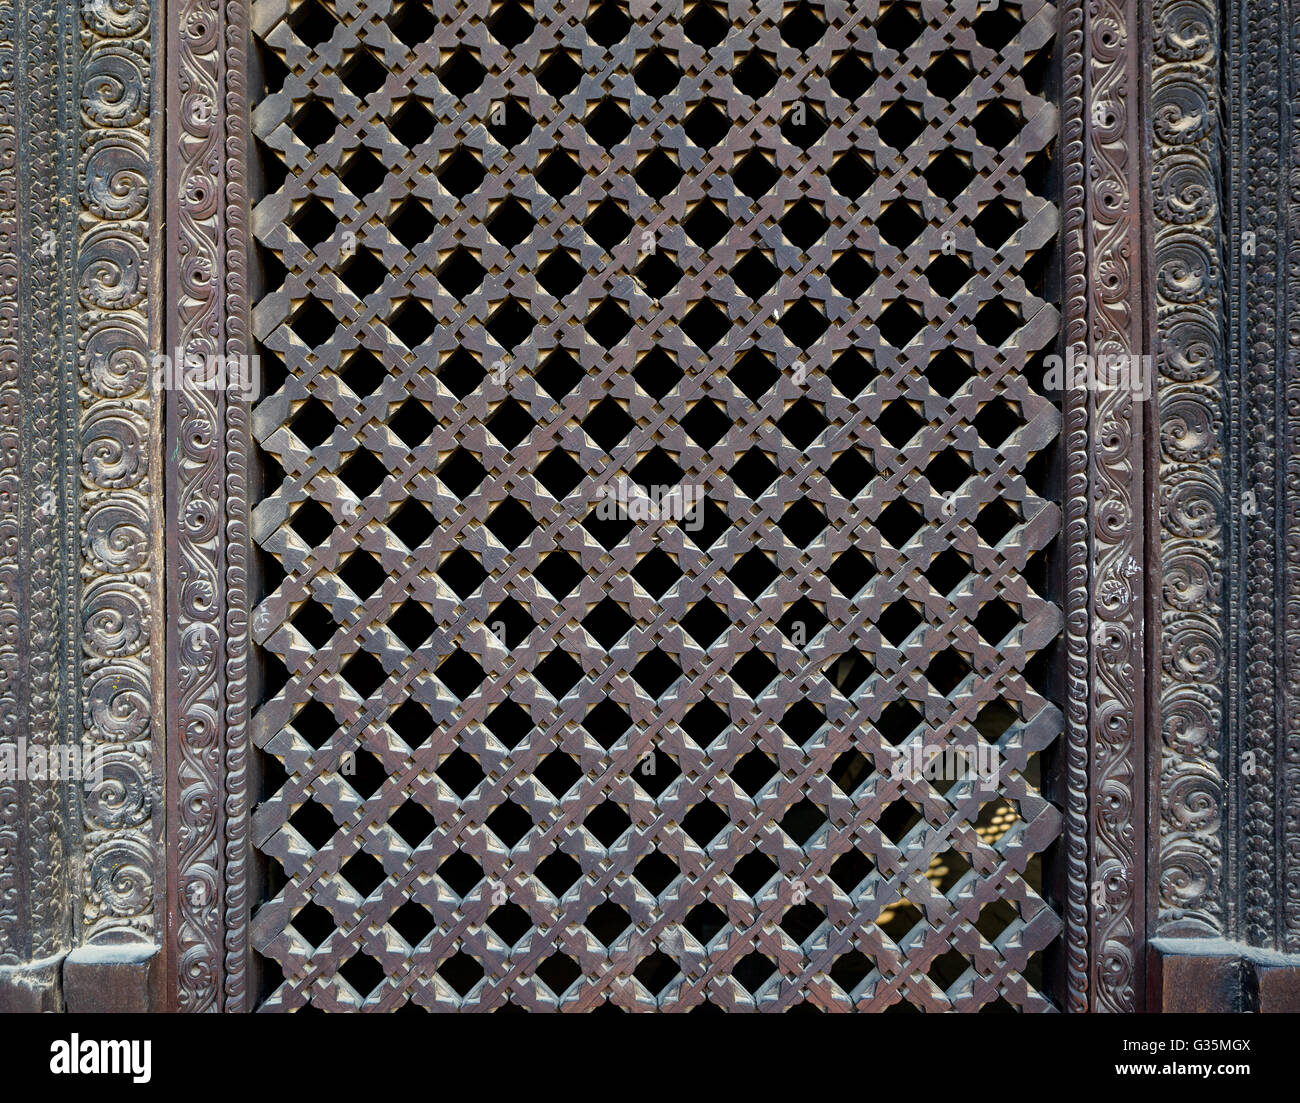 Wooden Nepalese window called Ankhi jhyal - Stock Image